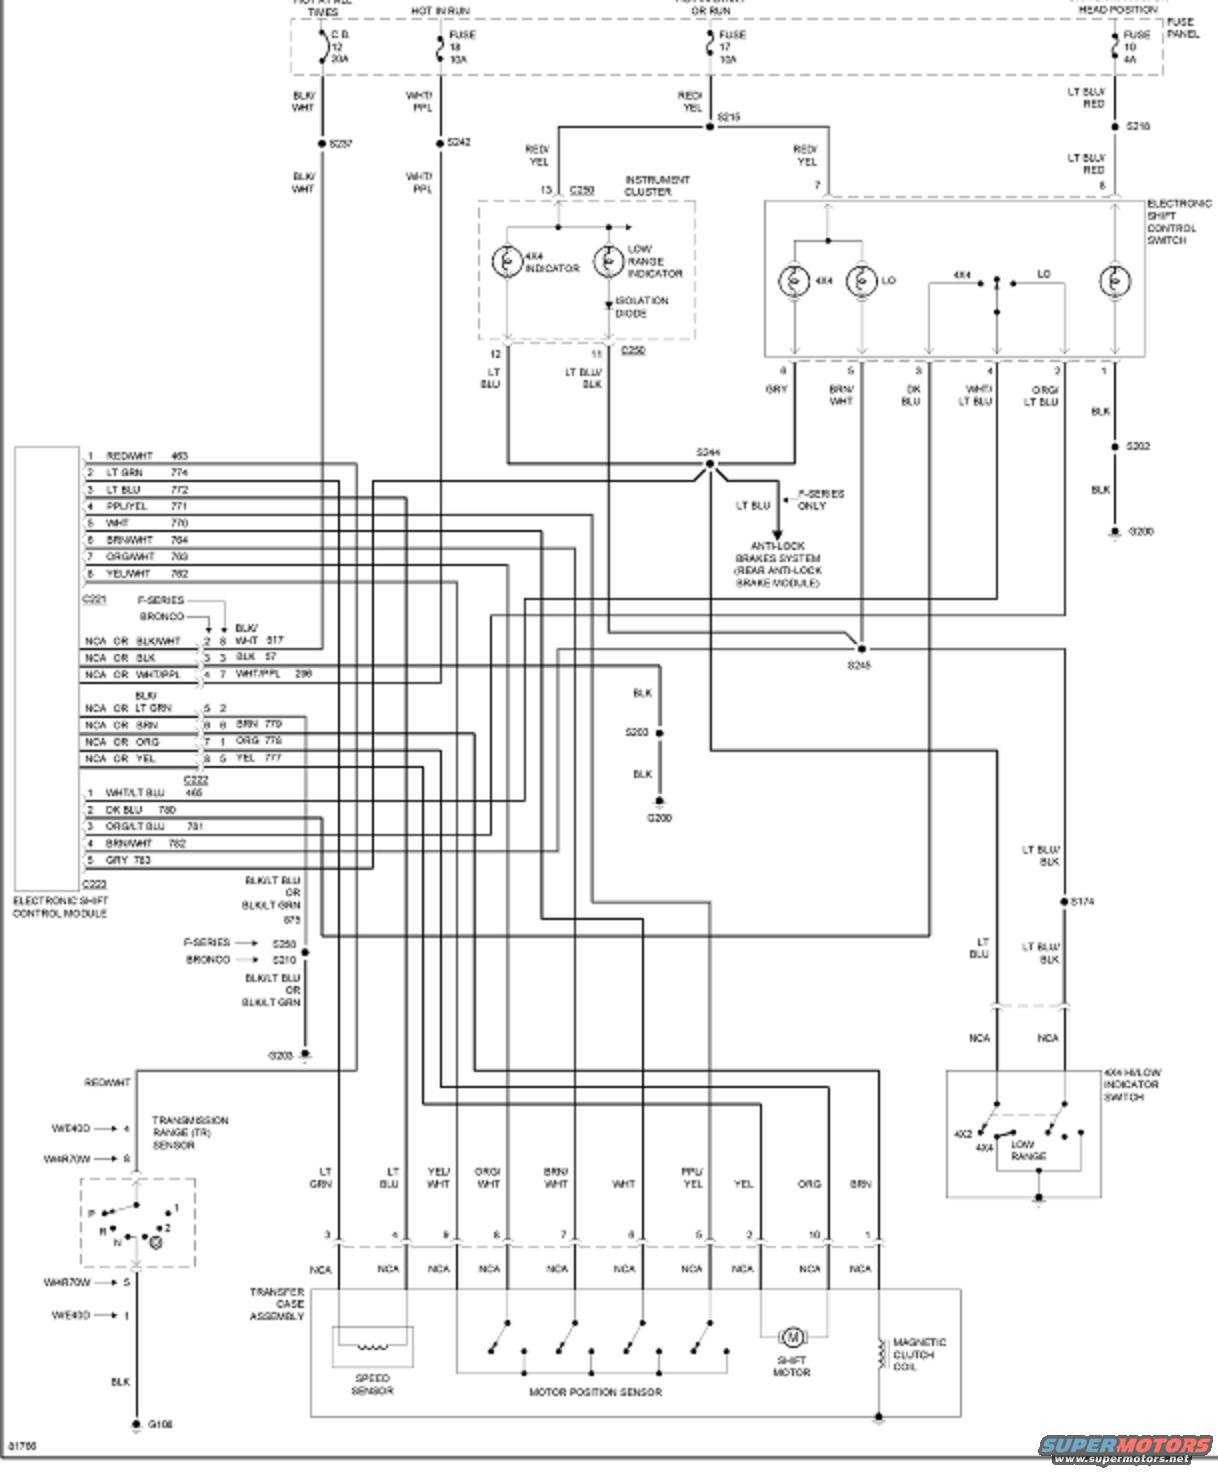 Wiring Diagram For 4wh System